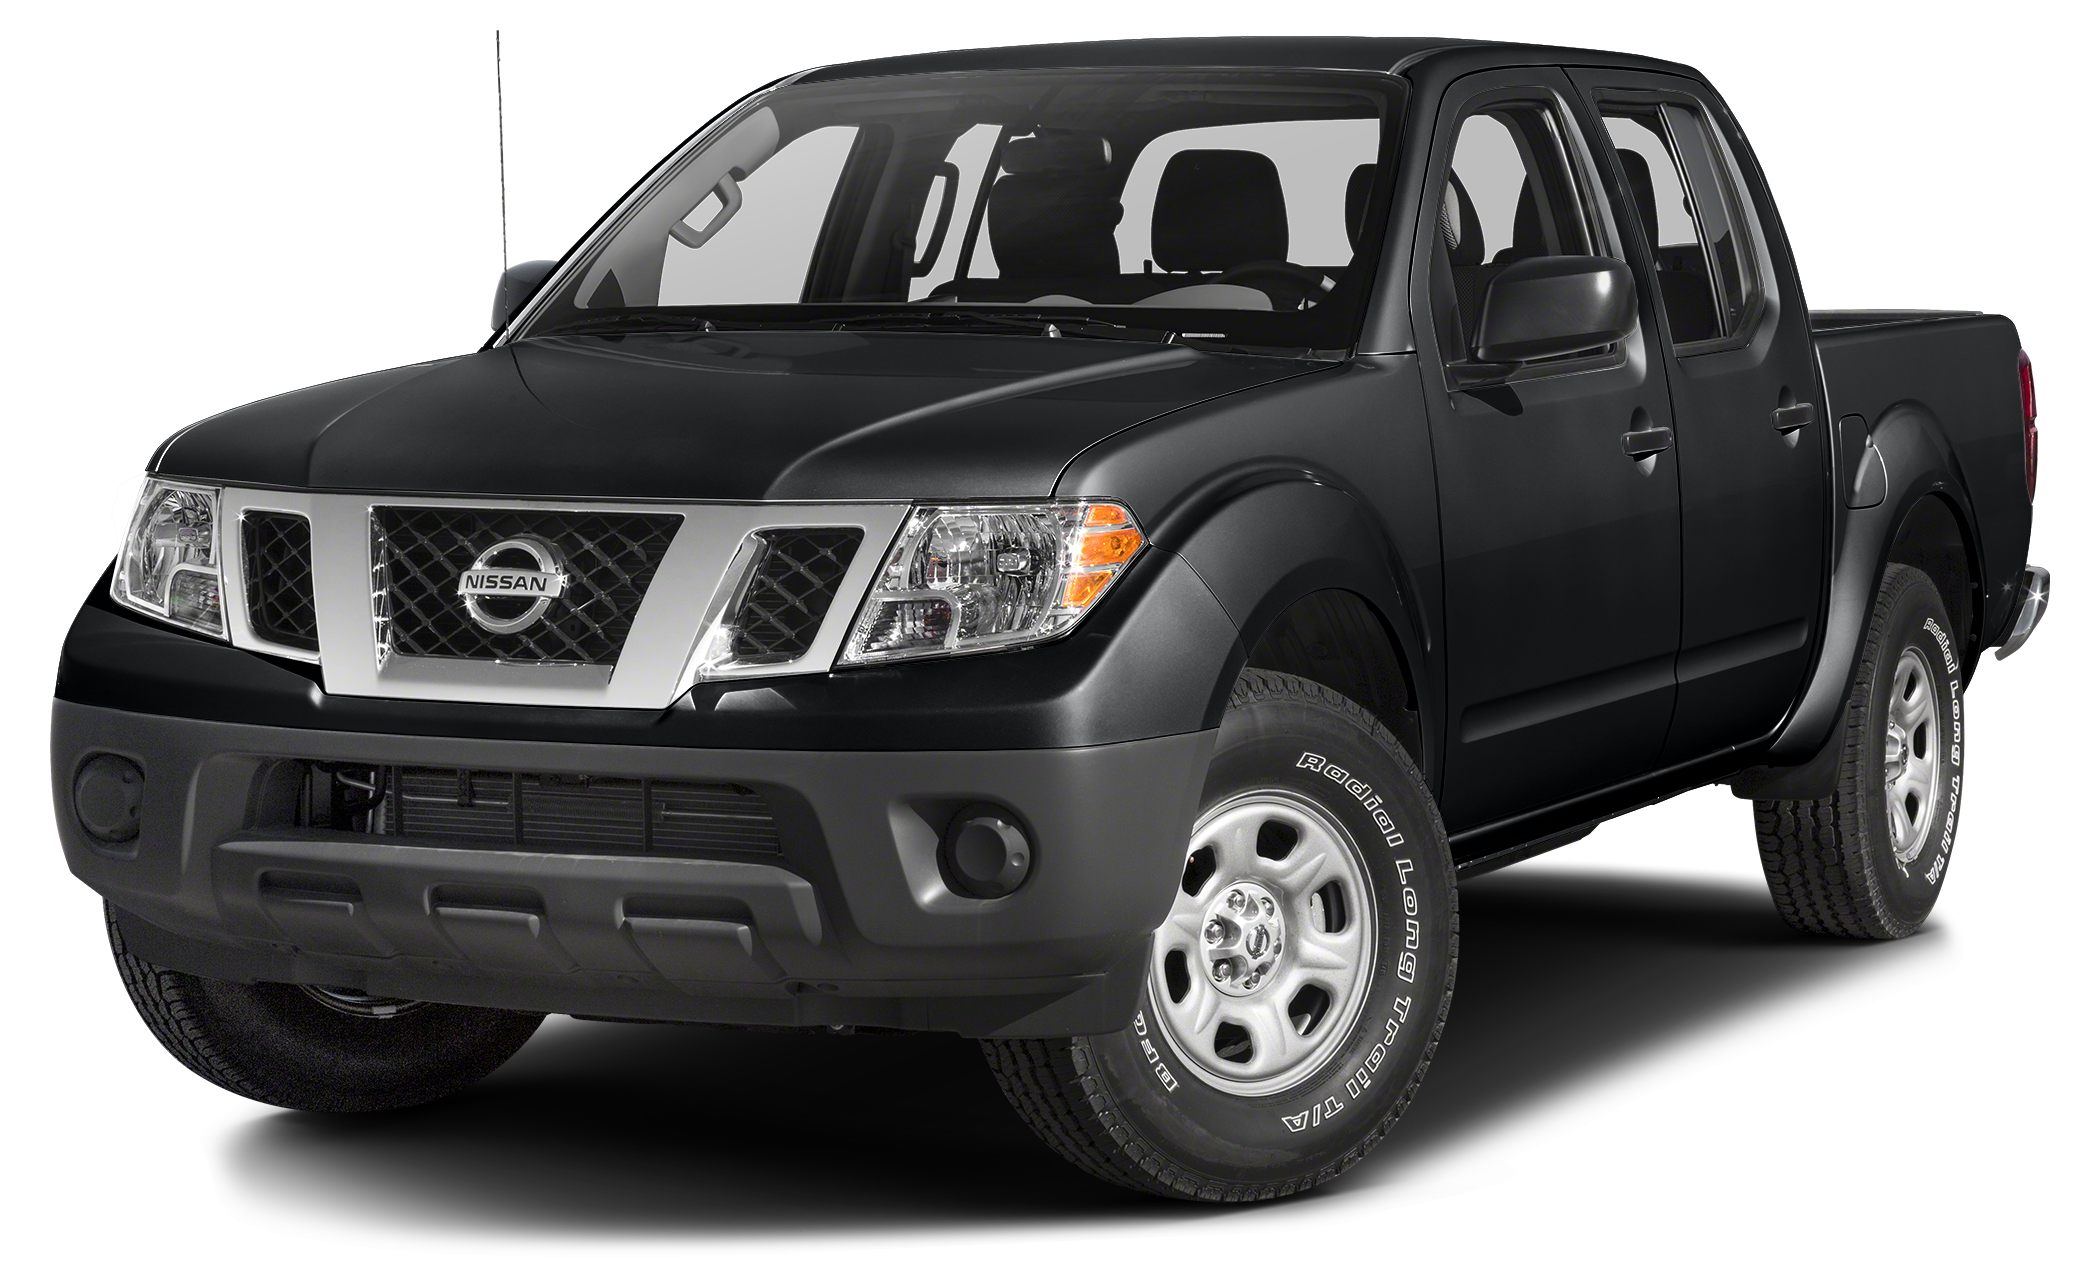 2016 Nissan Frontier S Prices are PLUS tax tag title fee 799 Pre-Delivery Service Fee and 1